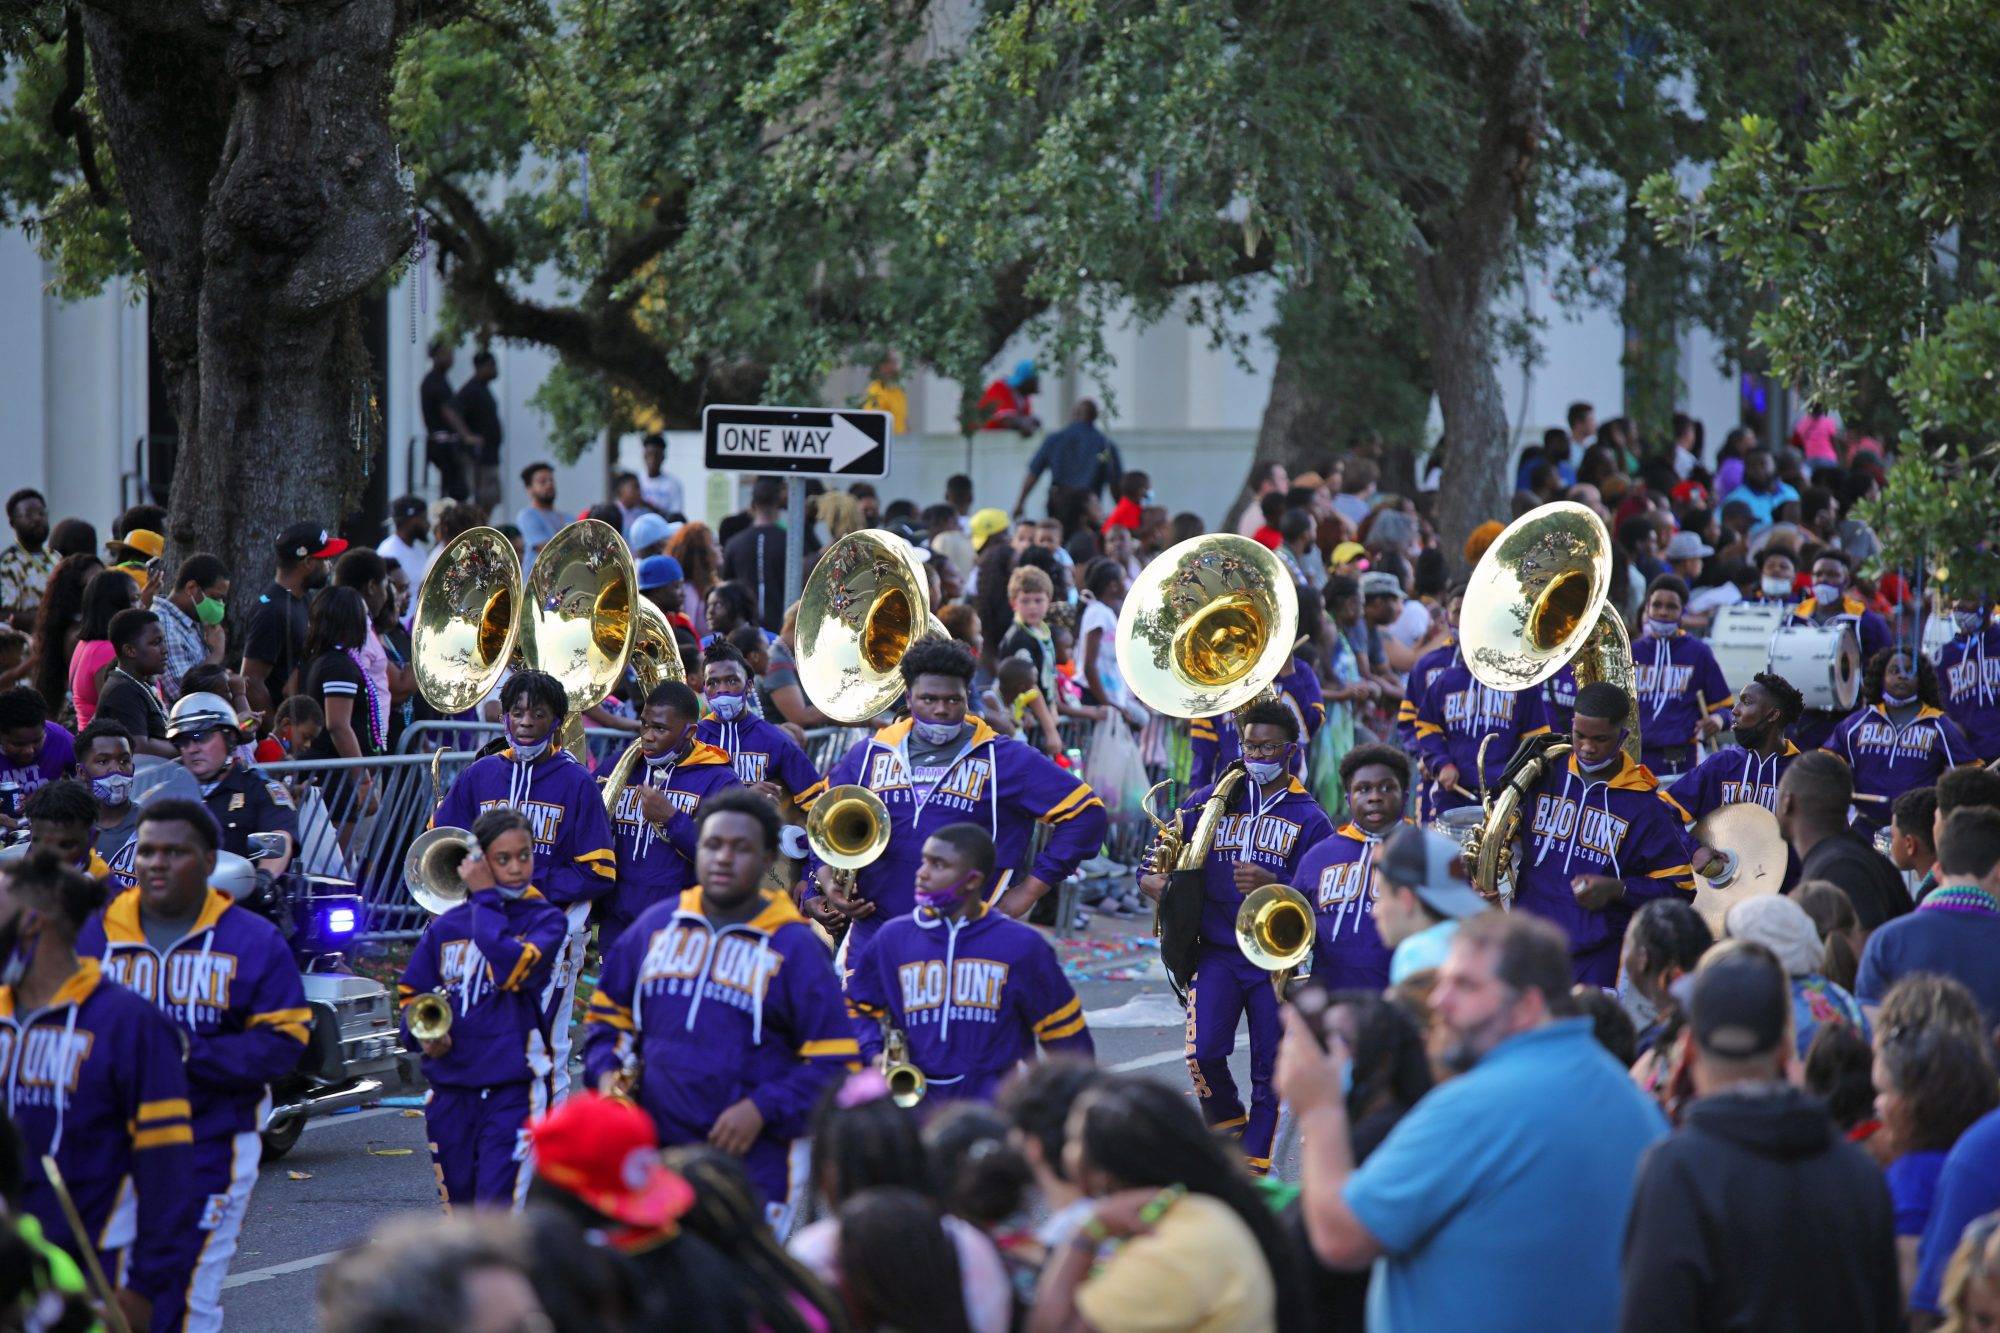 Tardy Gras Parade Mobile AL Marching Band